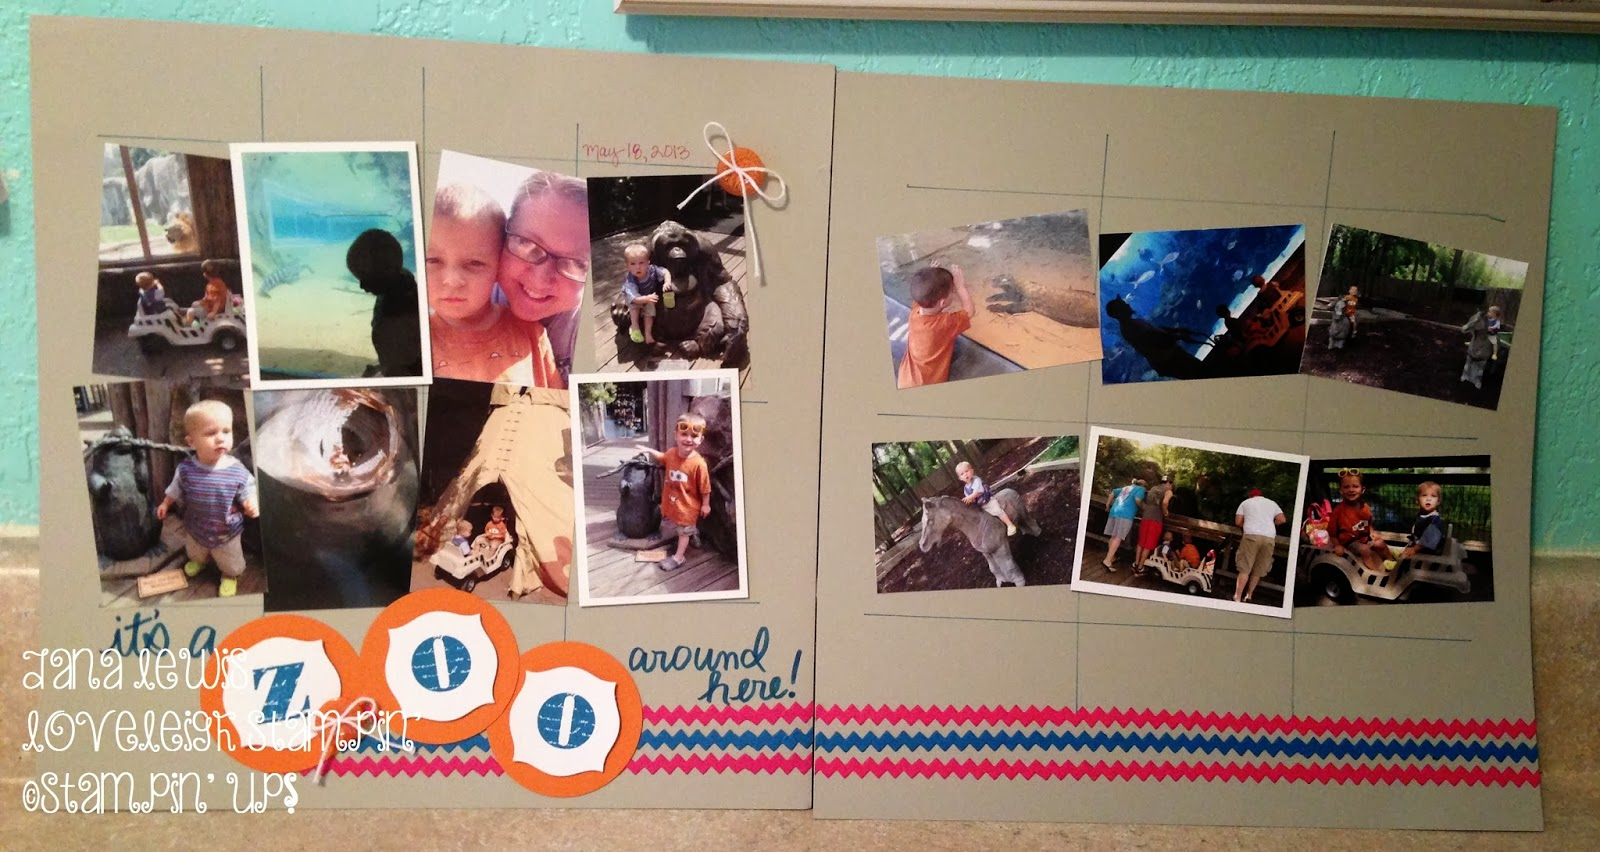 Scrapbook ideas zoo - On This First Layout I Used Numerous Wallet Sized Photos To Capture Our Trip To The Zoo I Felt Like Each Photo Was Important And Didn T Want To Leave Any